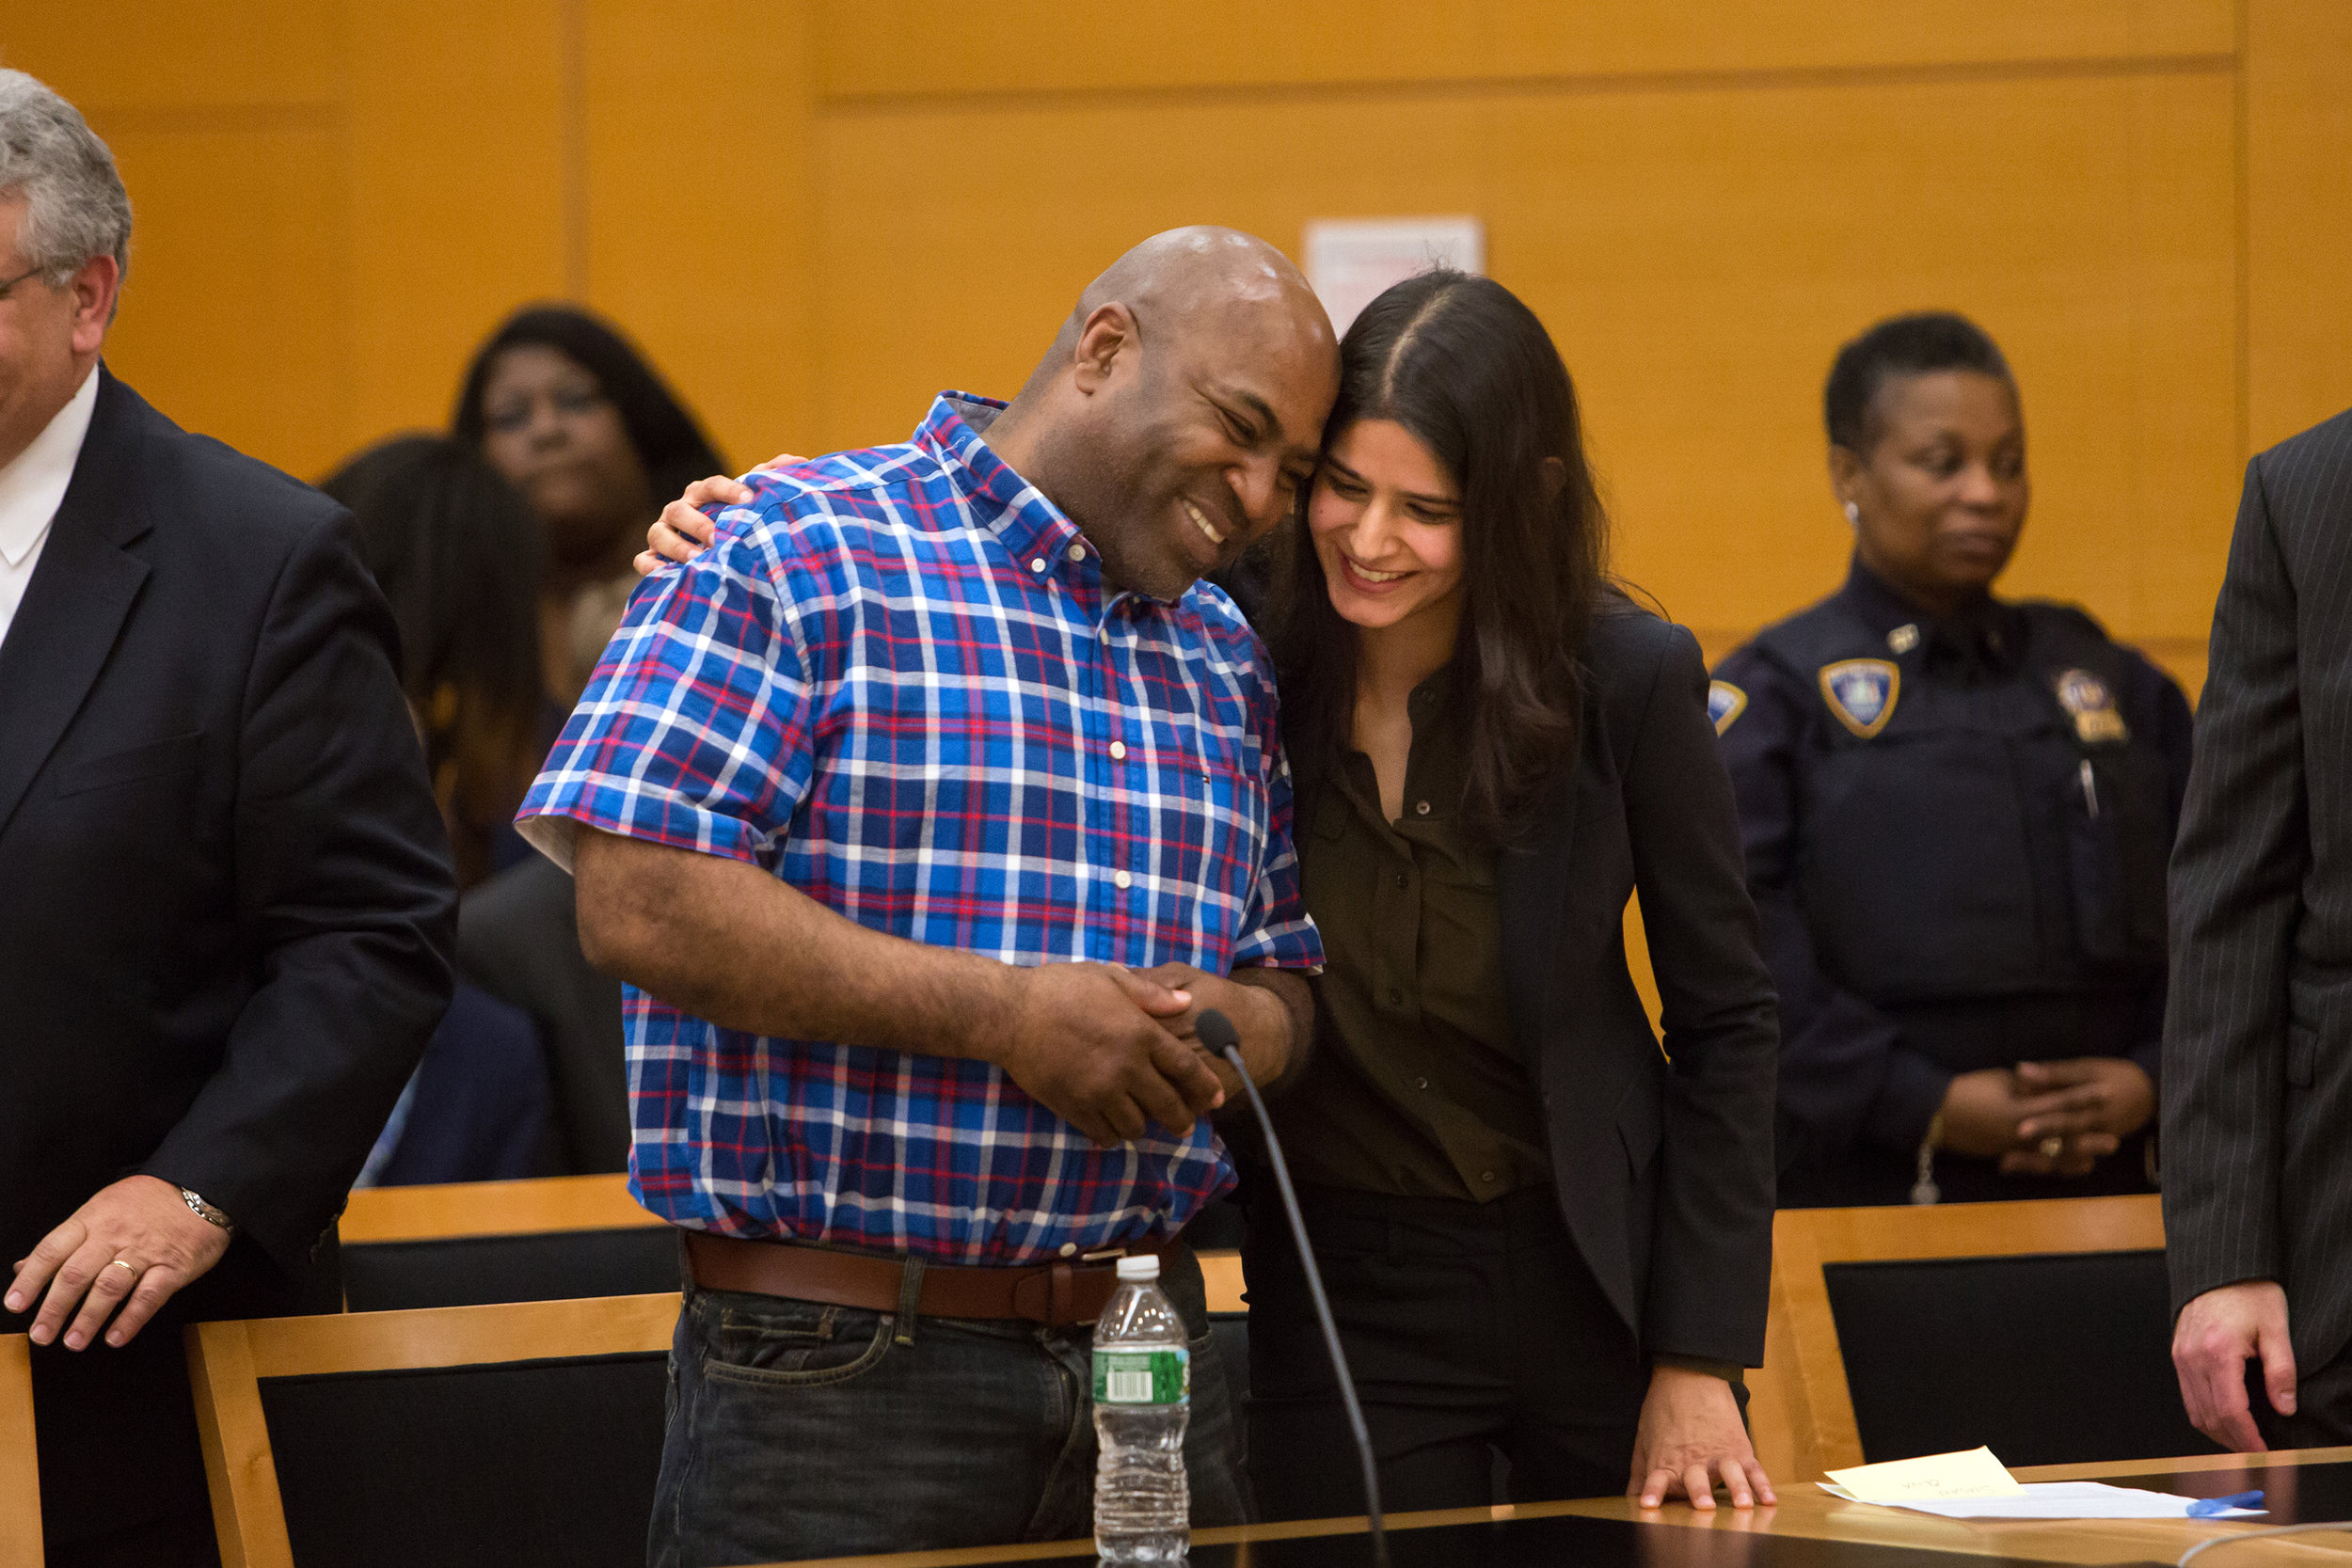 Andre Hatchett, a man who has been in state prison for more than two decades for a 1991 murder receives a hug from his attorney, Seema Saifze from the Innocence Project, in a Brooklyn court room after a judge overturned his conviction.